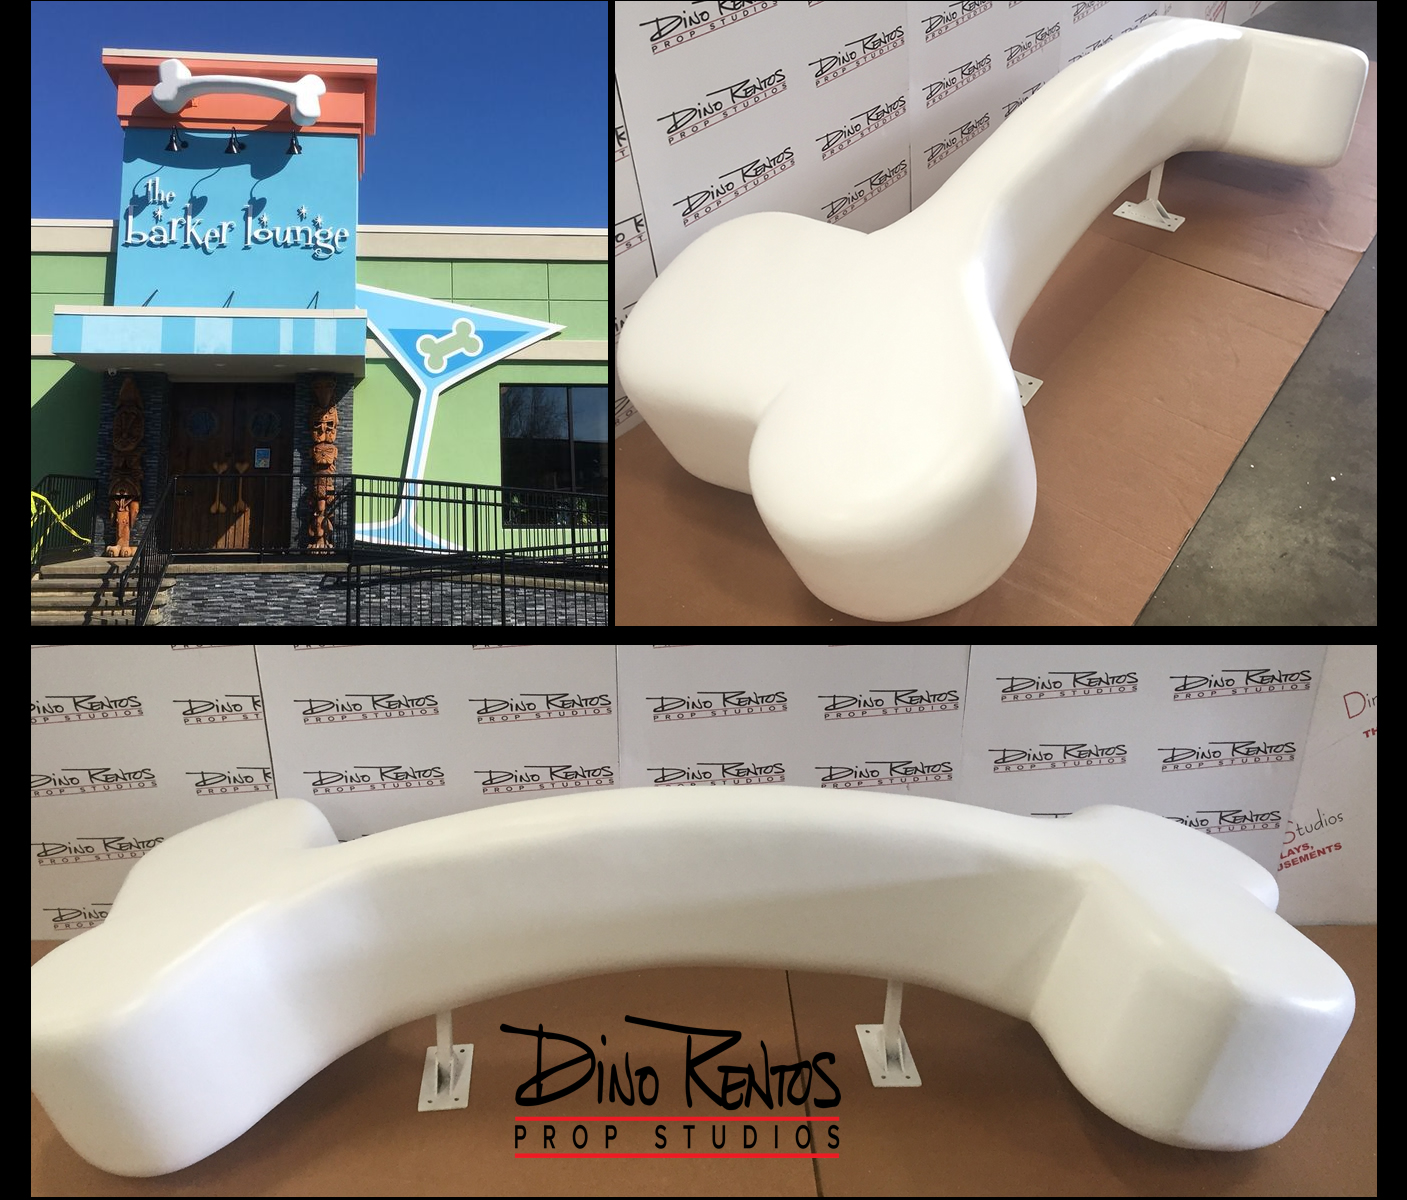 Large Foam Dog Bone for exterior sign Barker Lounge display prop retail signage